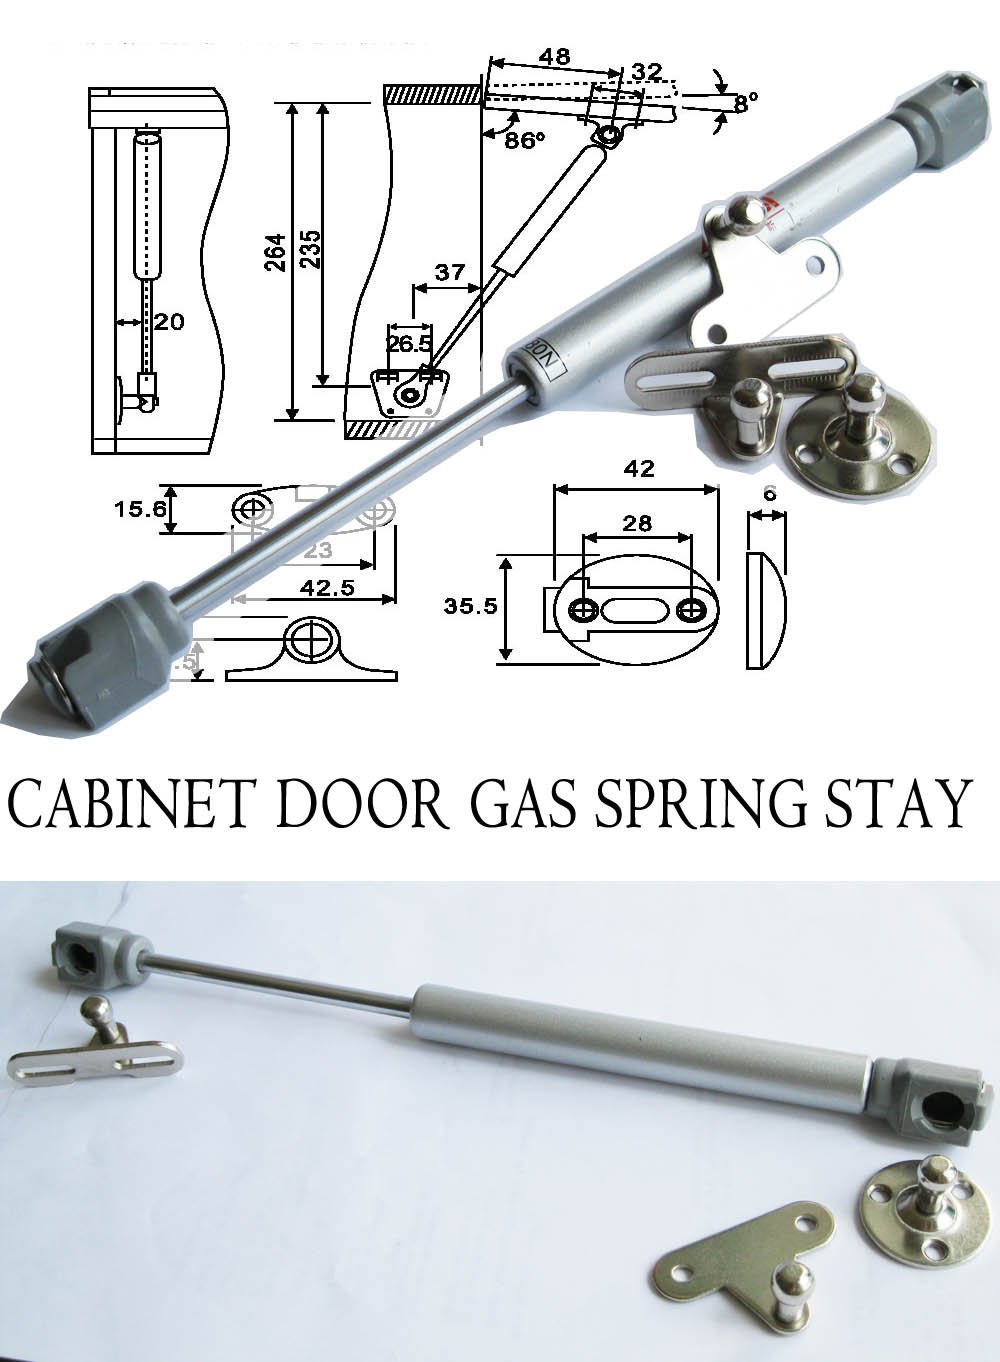 1 Pc of Hnfshop Cabinet Door Lift up Hydraulic Gas Spring Support Lift Stay (80N) - - Amazon.com  sc 1 st  Amazon.com & 1 Pc of Hnfshop Cabinet Door Lift up Hydraulic Gas Spring Support ...